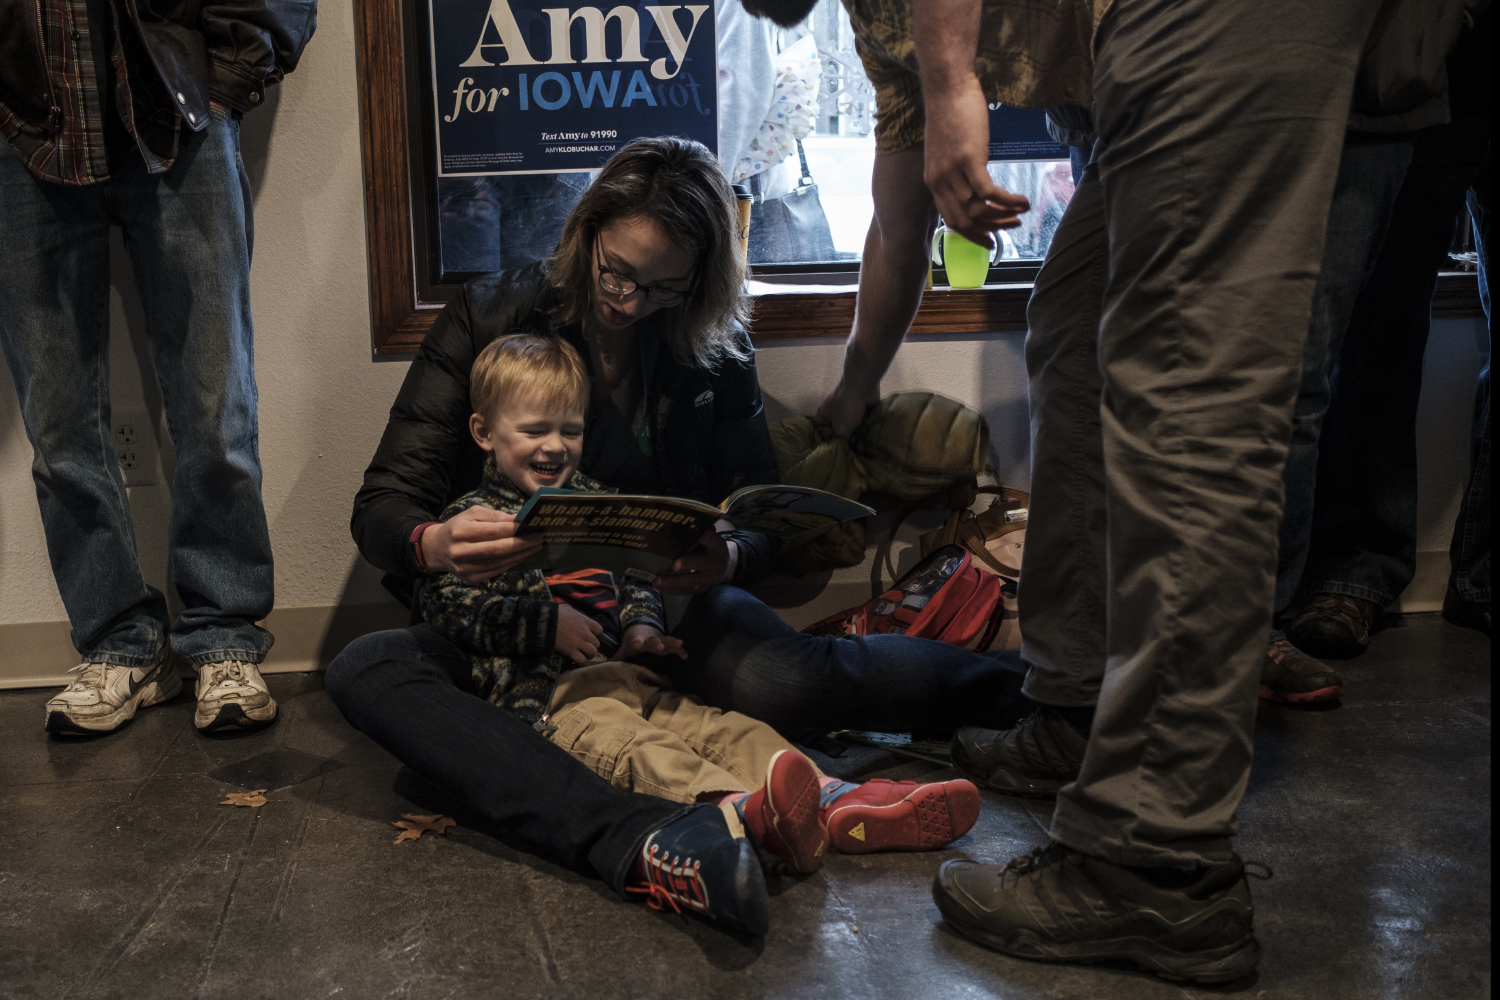 Mary Kosloski reads with her son Felix during an office opening event for Senator Amy Klobuchar, D-Minn. in Iowa City on Dec. 28.